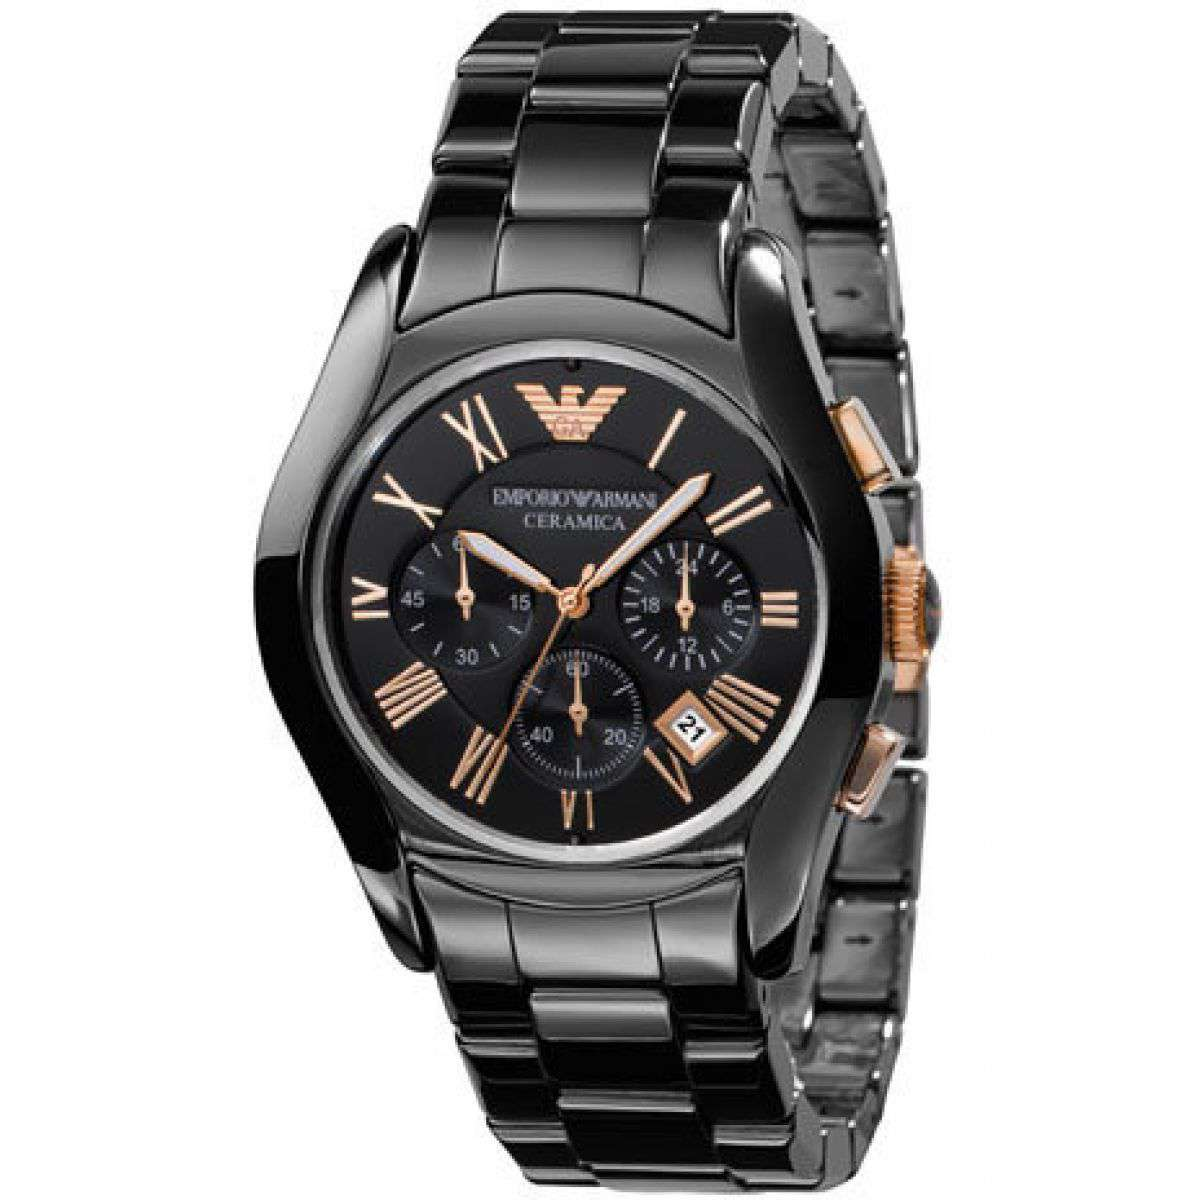 Emporio Armani Men's AR 1410 Ceramic Chronograph Watch Ceramic Umisfashion Store